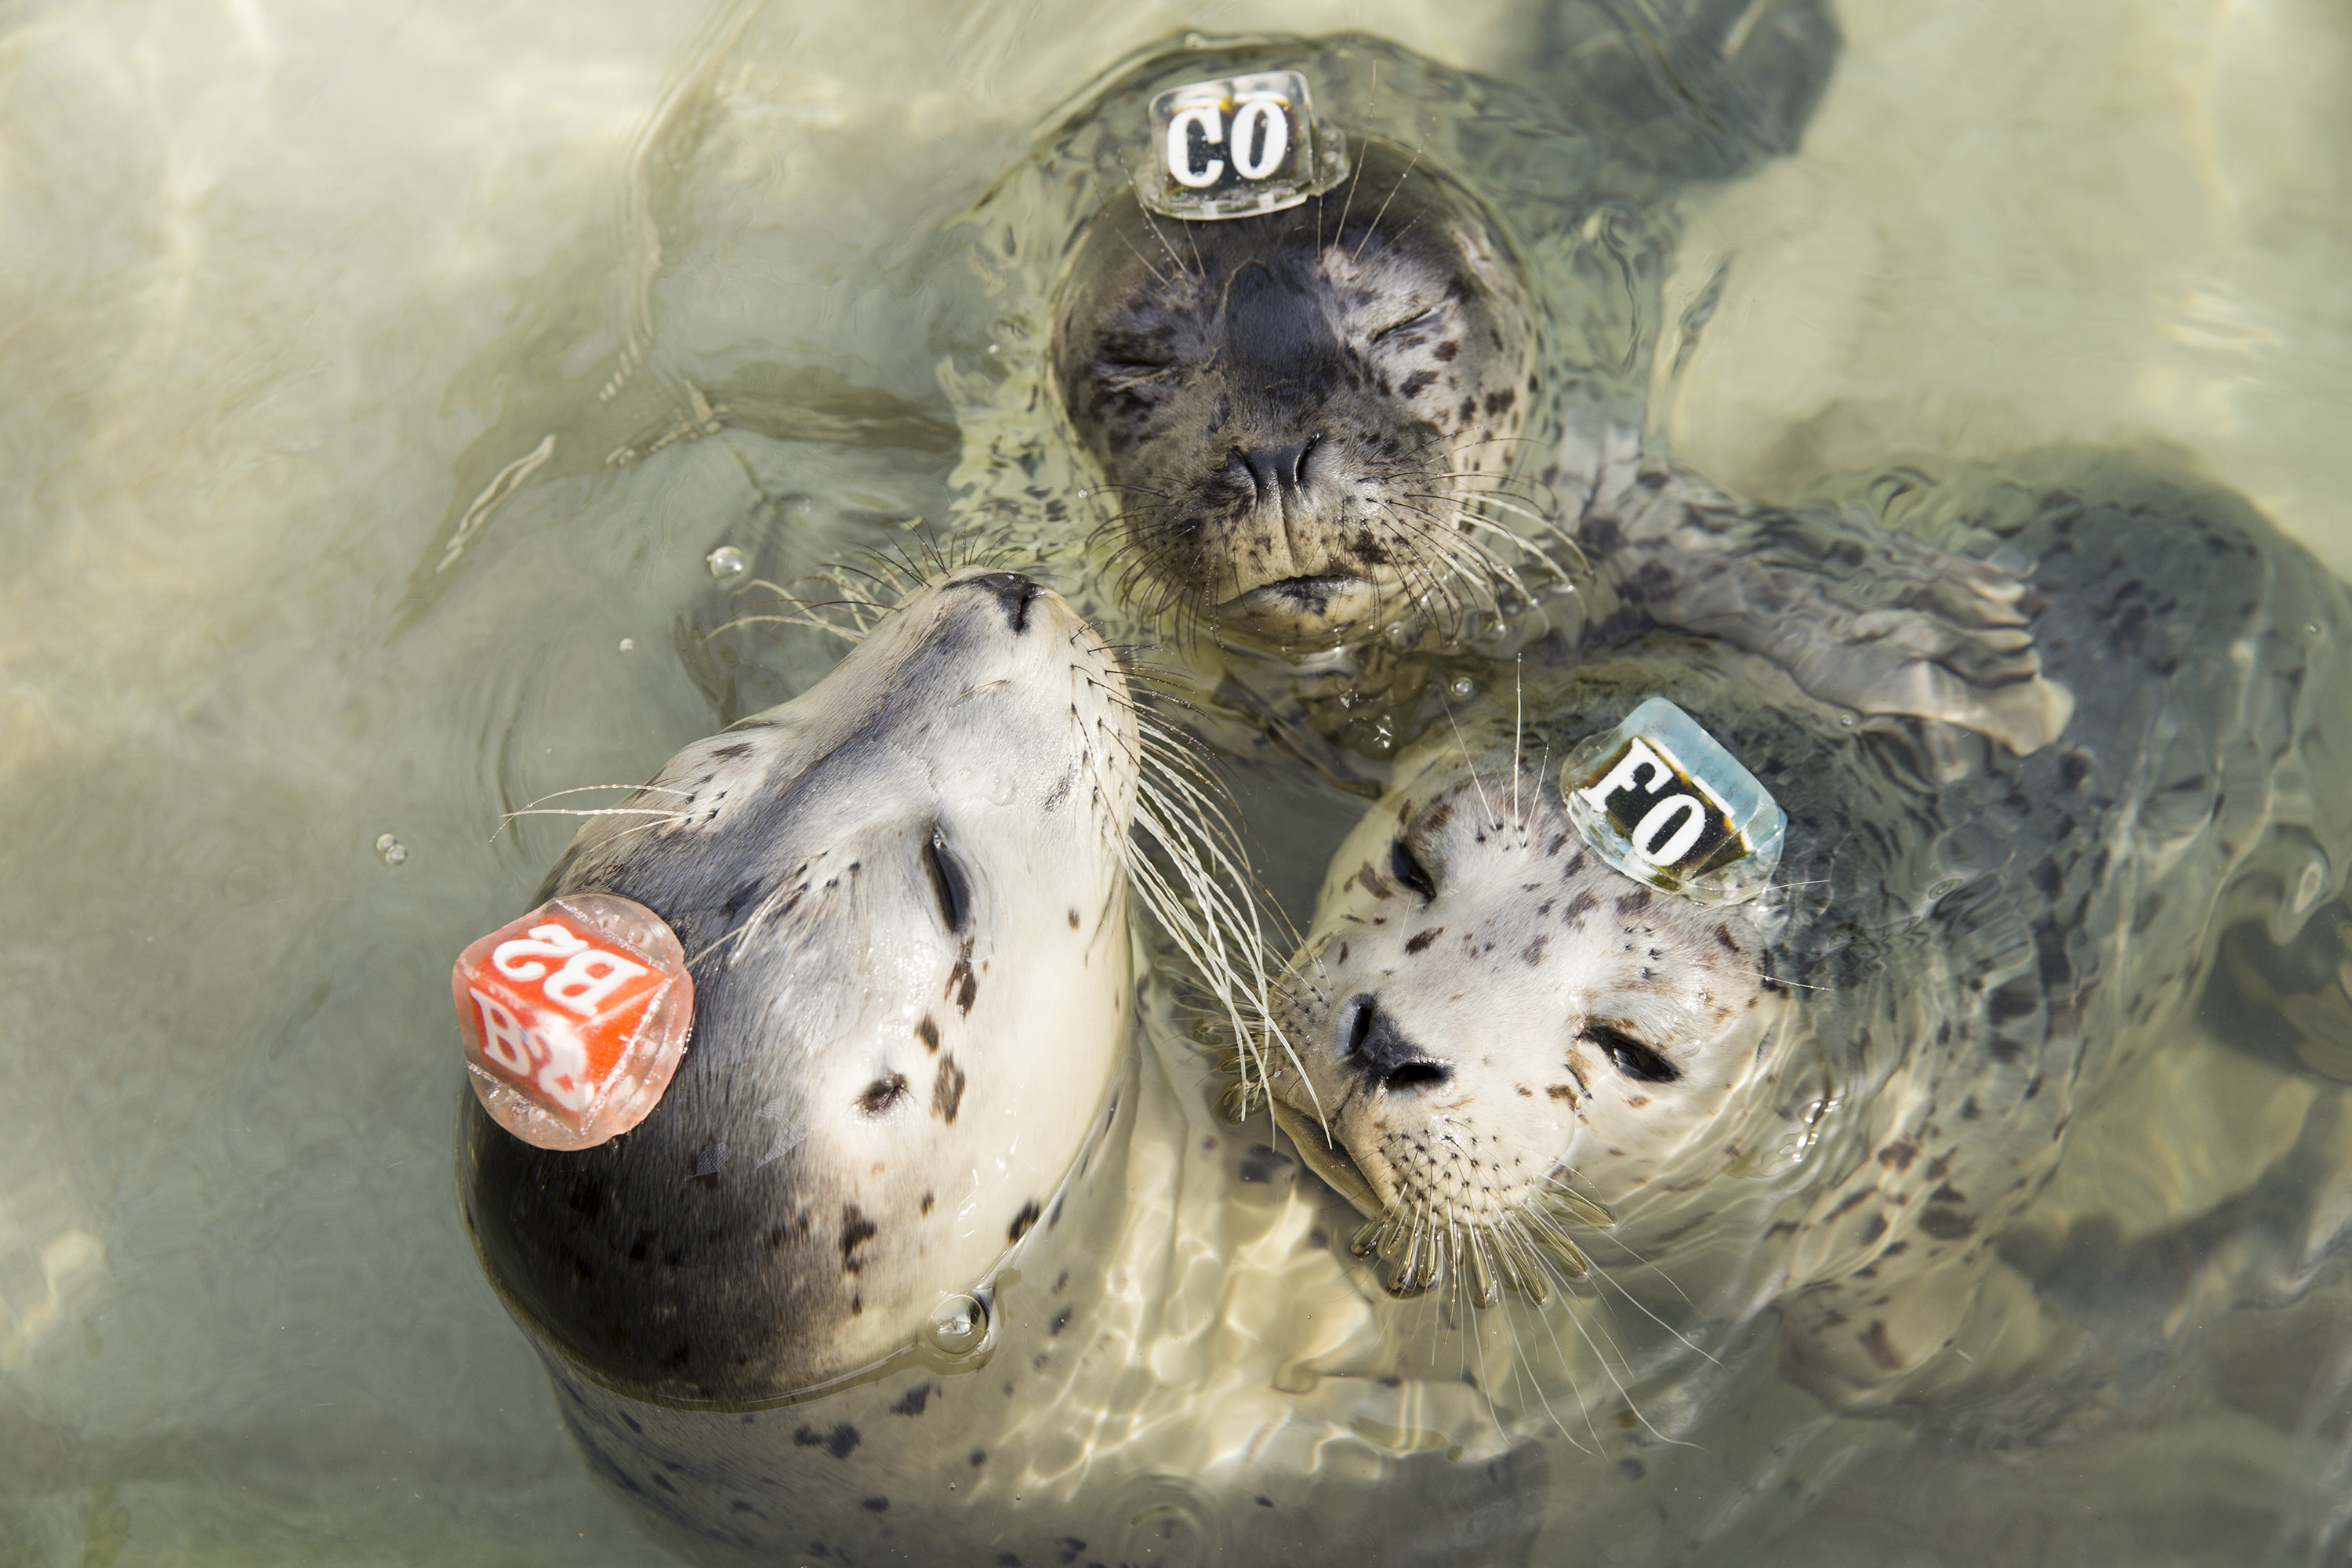 Harbor seal pups wear plastic identification tags that help caregivers tell them apart at the Marine Mammal Center in Marin County, Calif. on May 9, 2014.